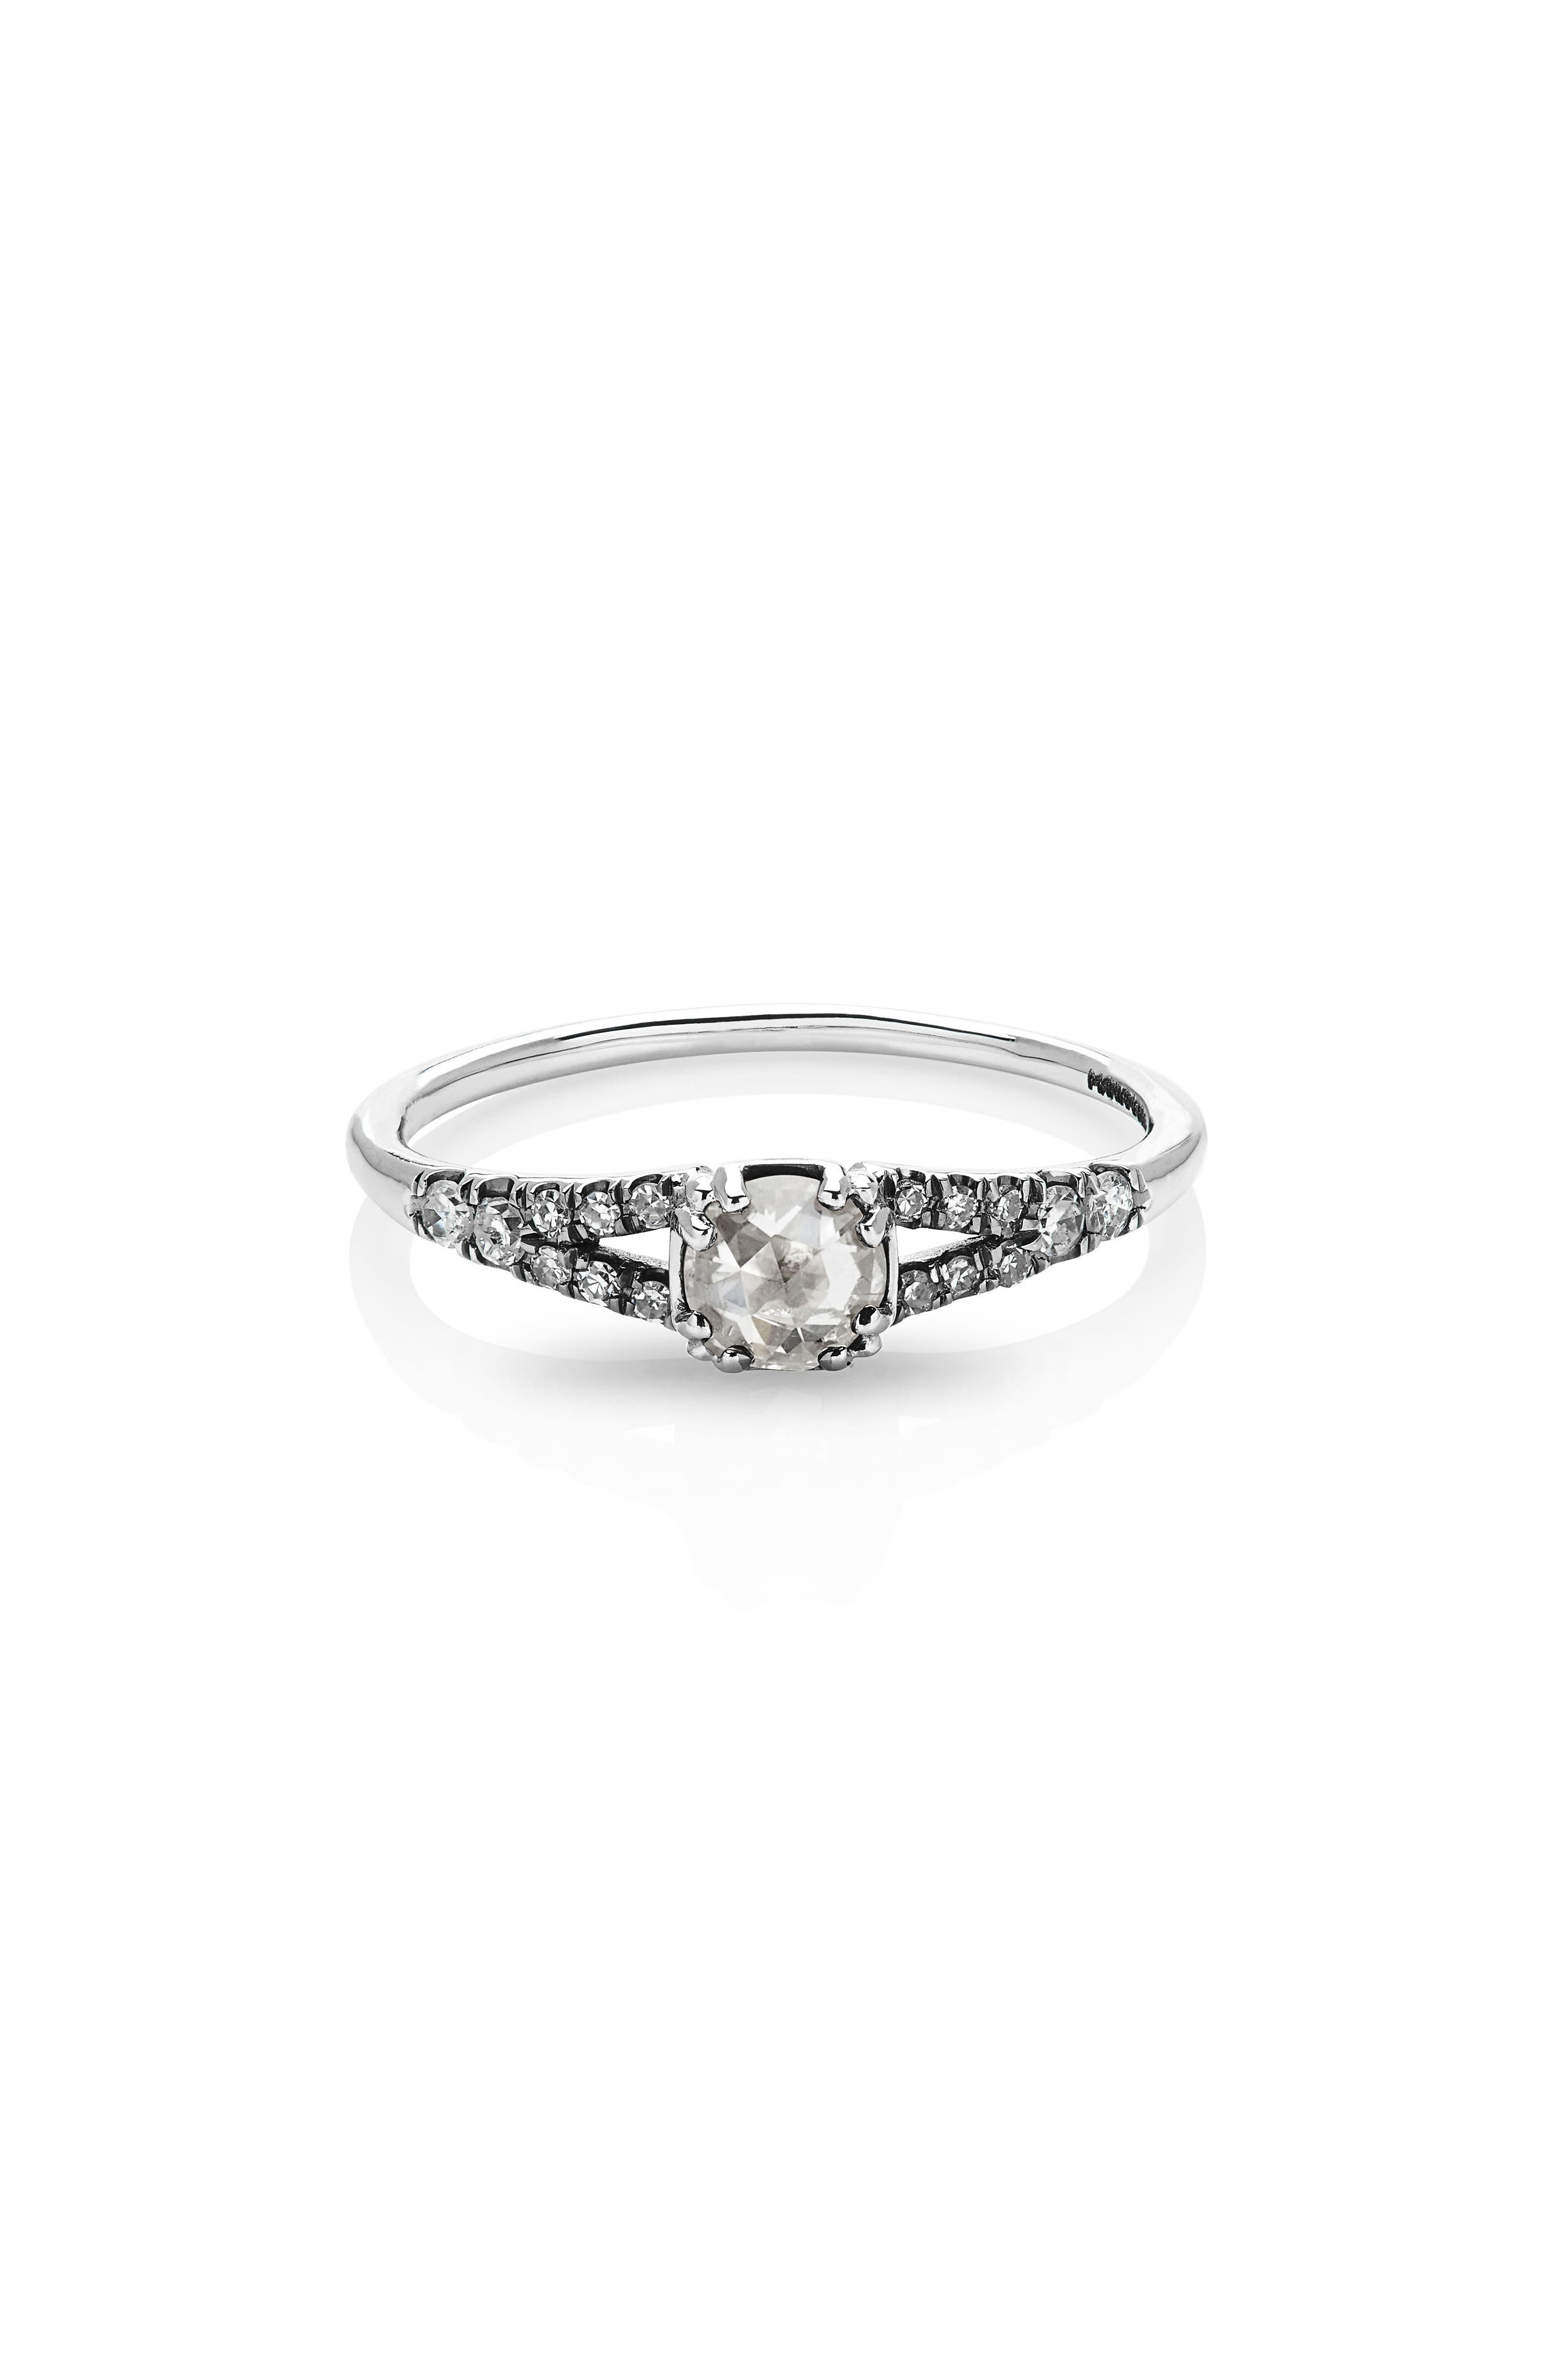 Devotion Solitaire Diamond Ring,                             Main thumbnail 1, color,                             WHITE GOLD